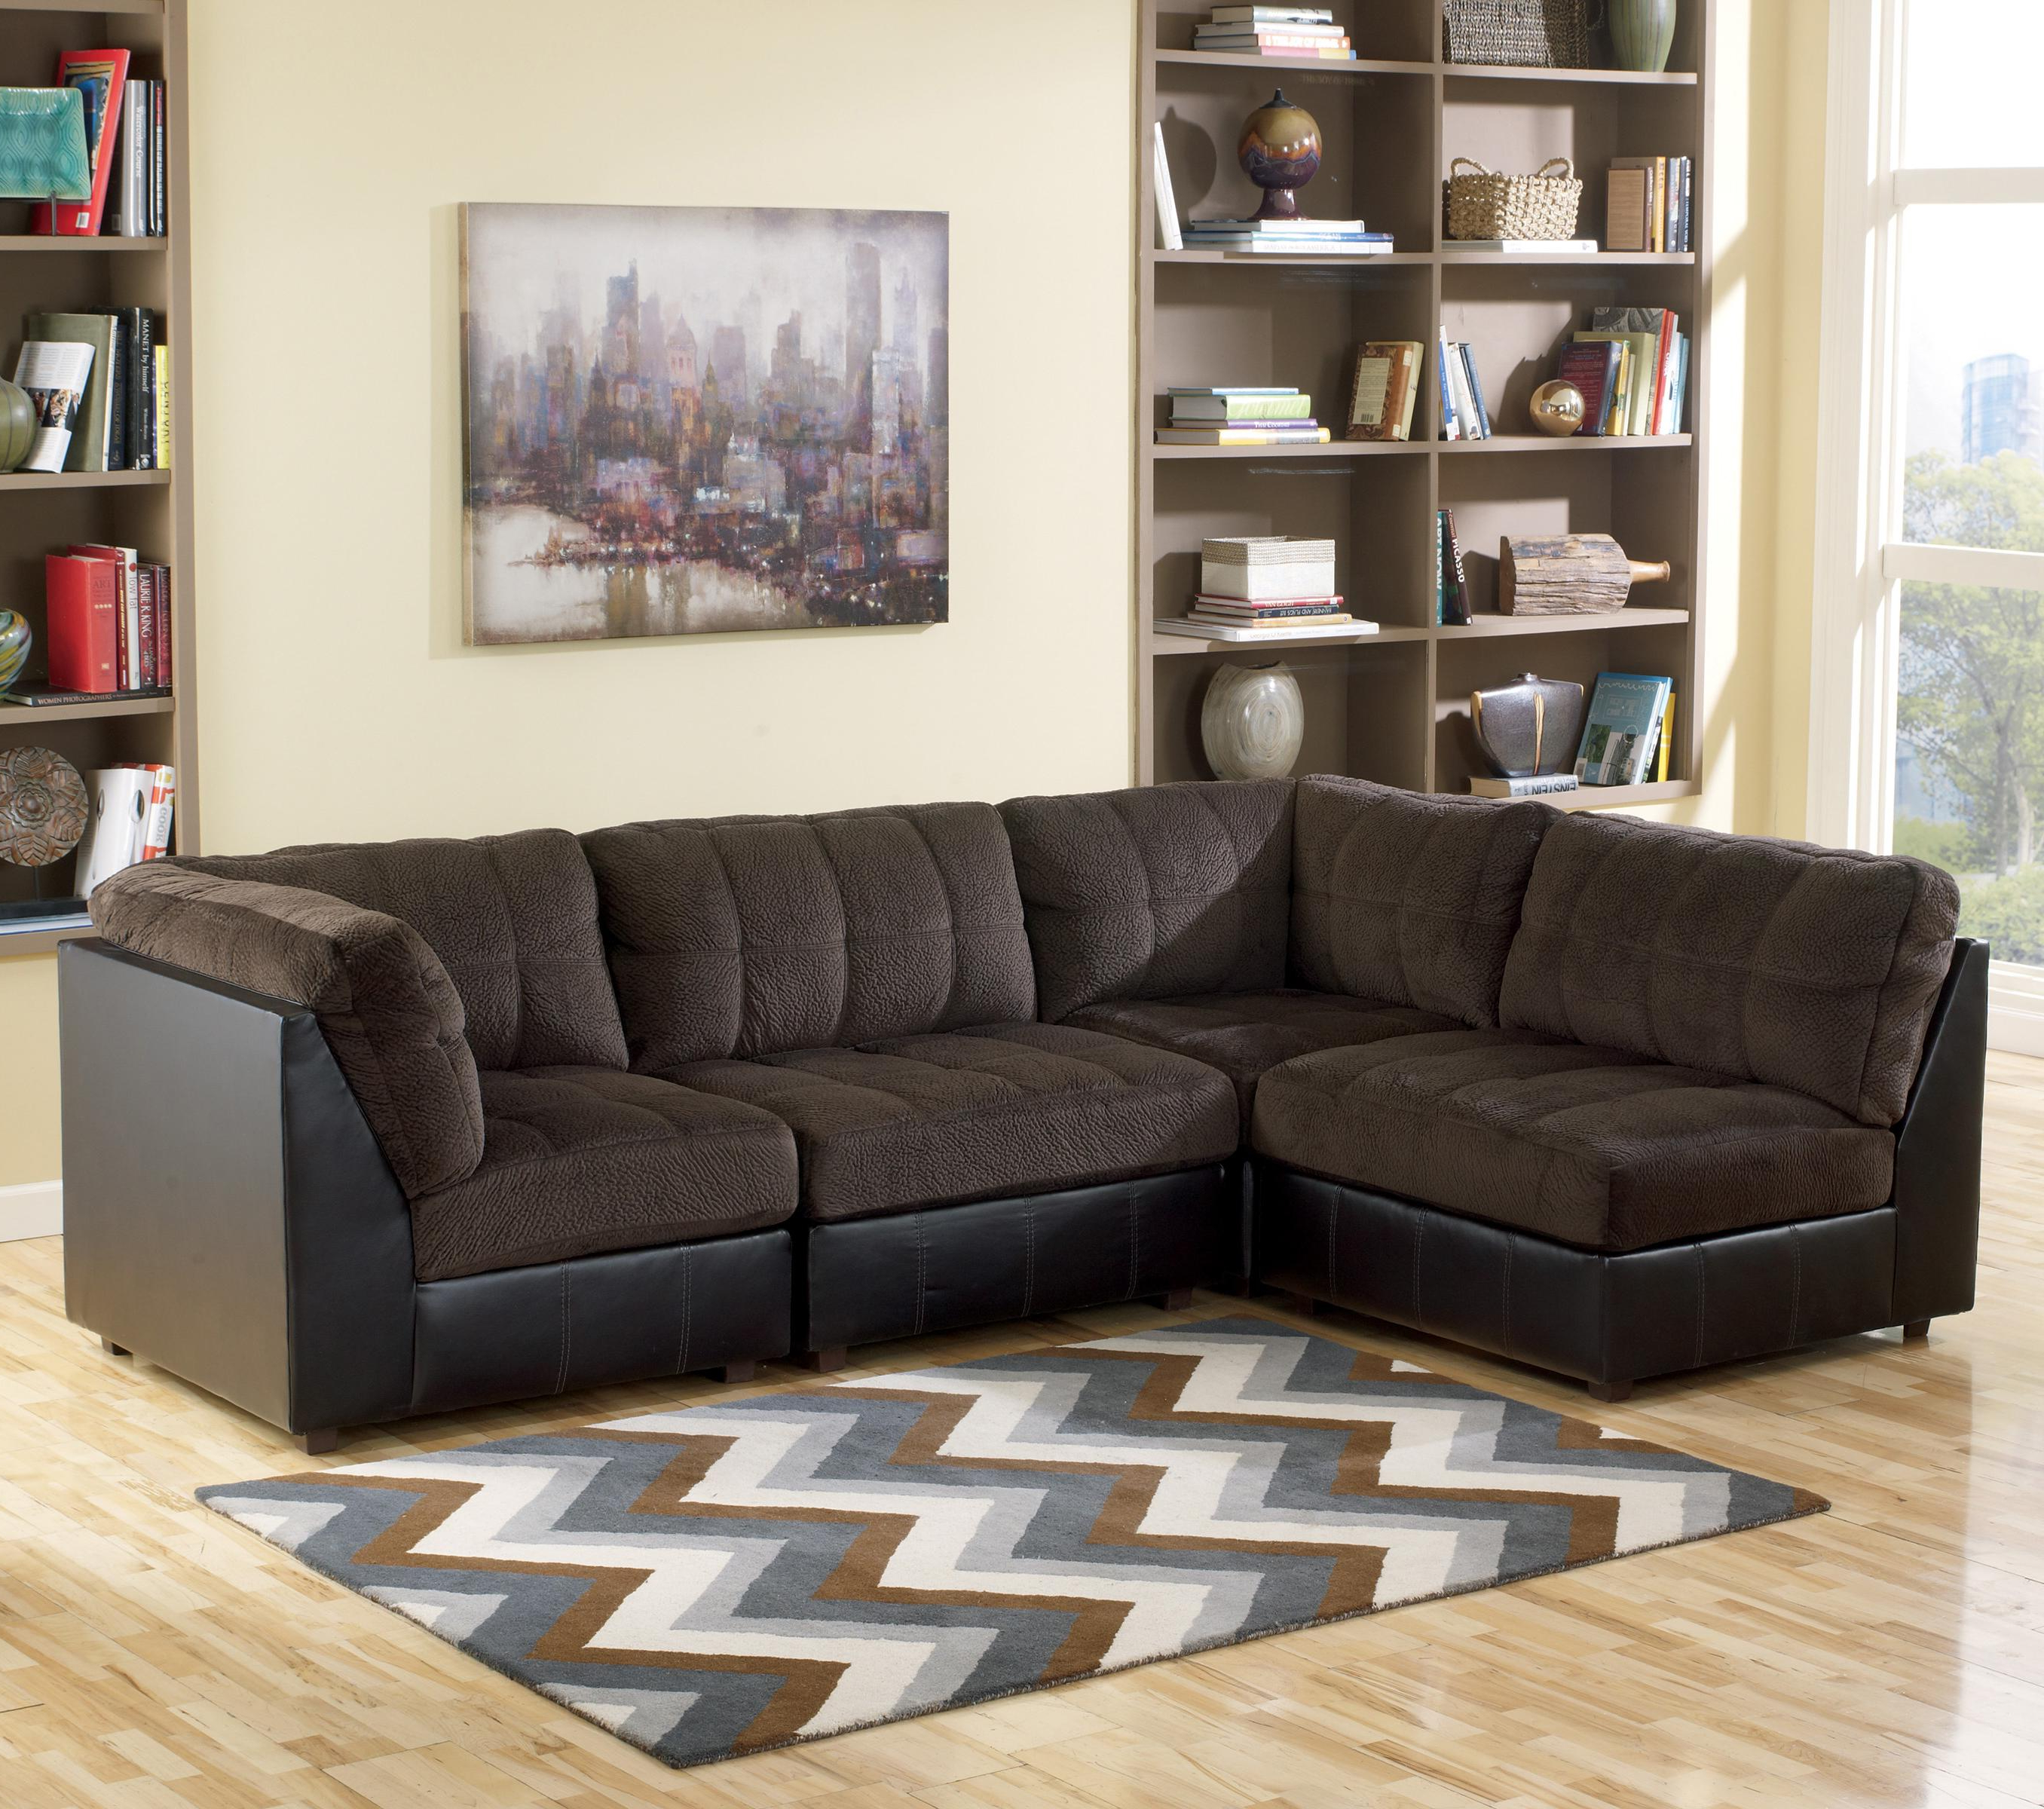 Signature Designashley Hobokin – Chocolate Contemporary 4 Piece With Current Norfolk Chocolate 6 Piece Sectionals (View 17 of 20)